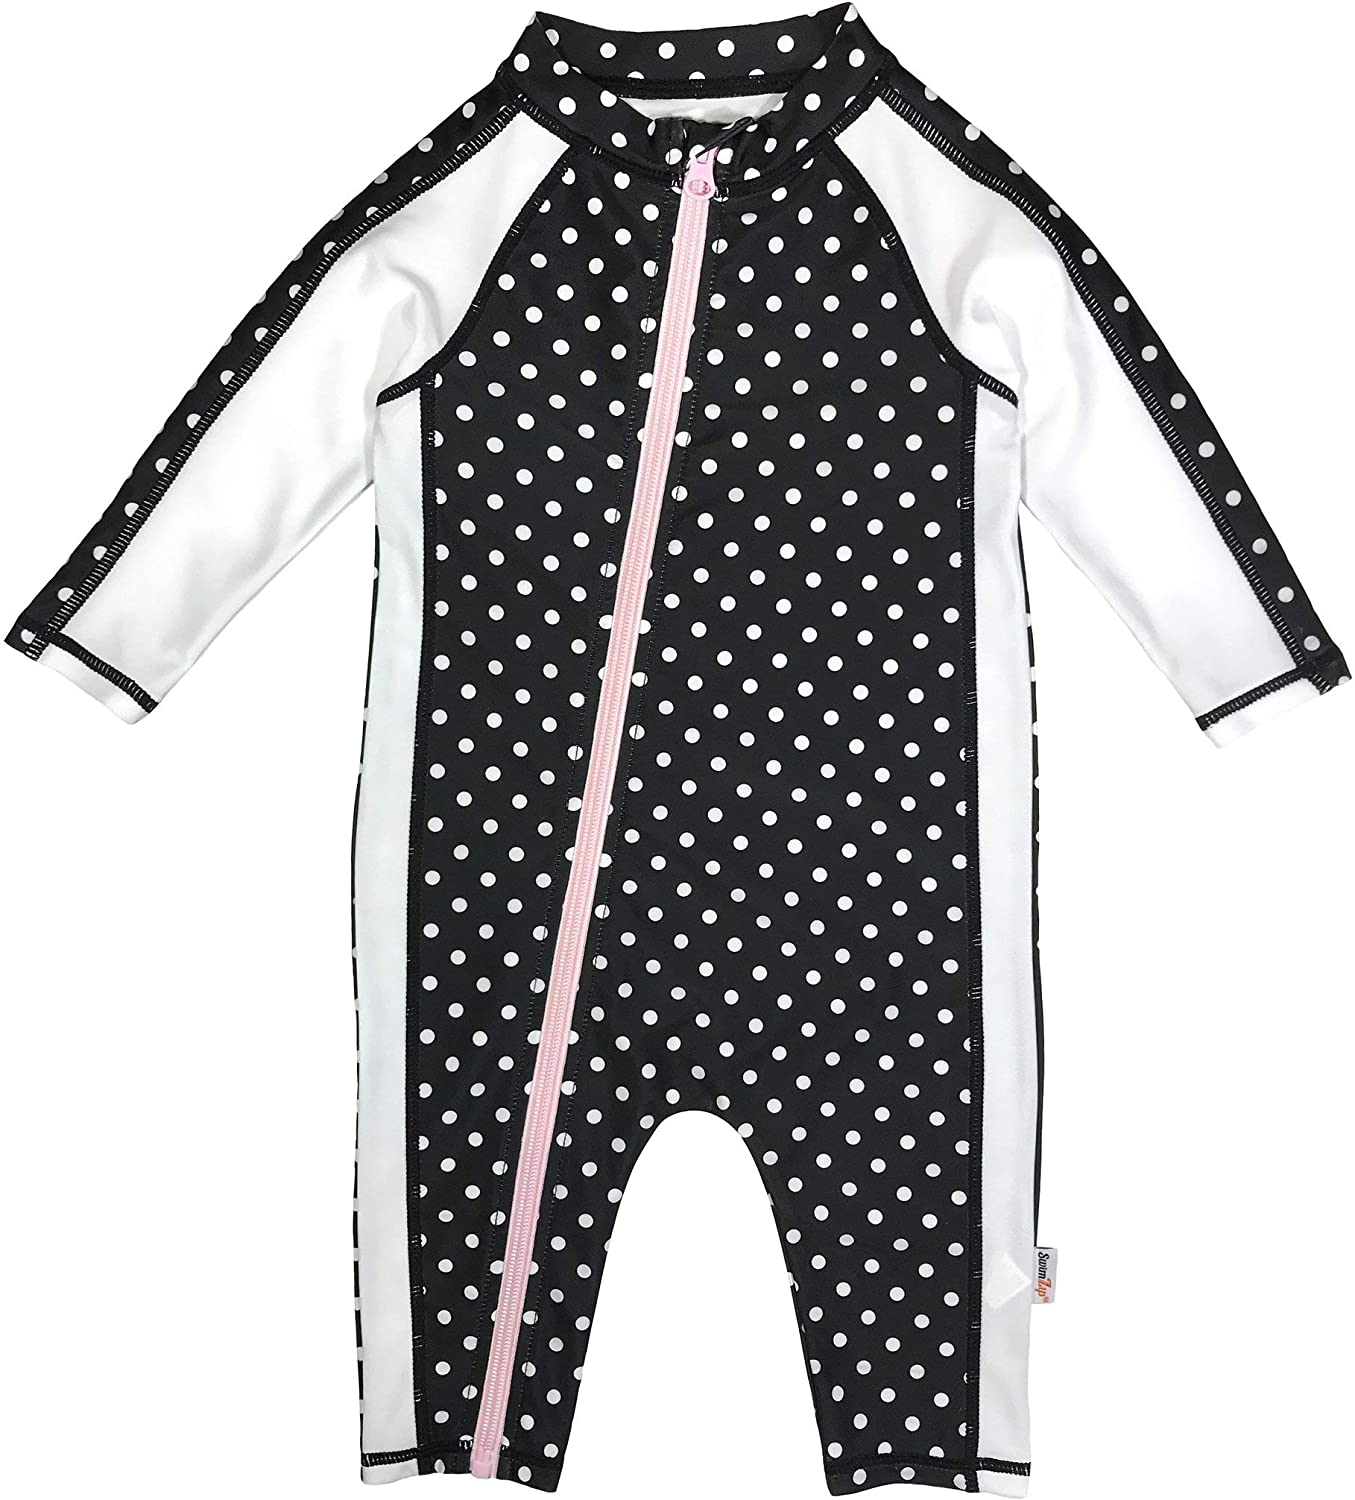 SwimZip UPF 50+ Girls Long Sleeve Sunsuit (Multiple Colors): Clothing, Shoes & Jewelry